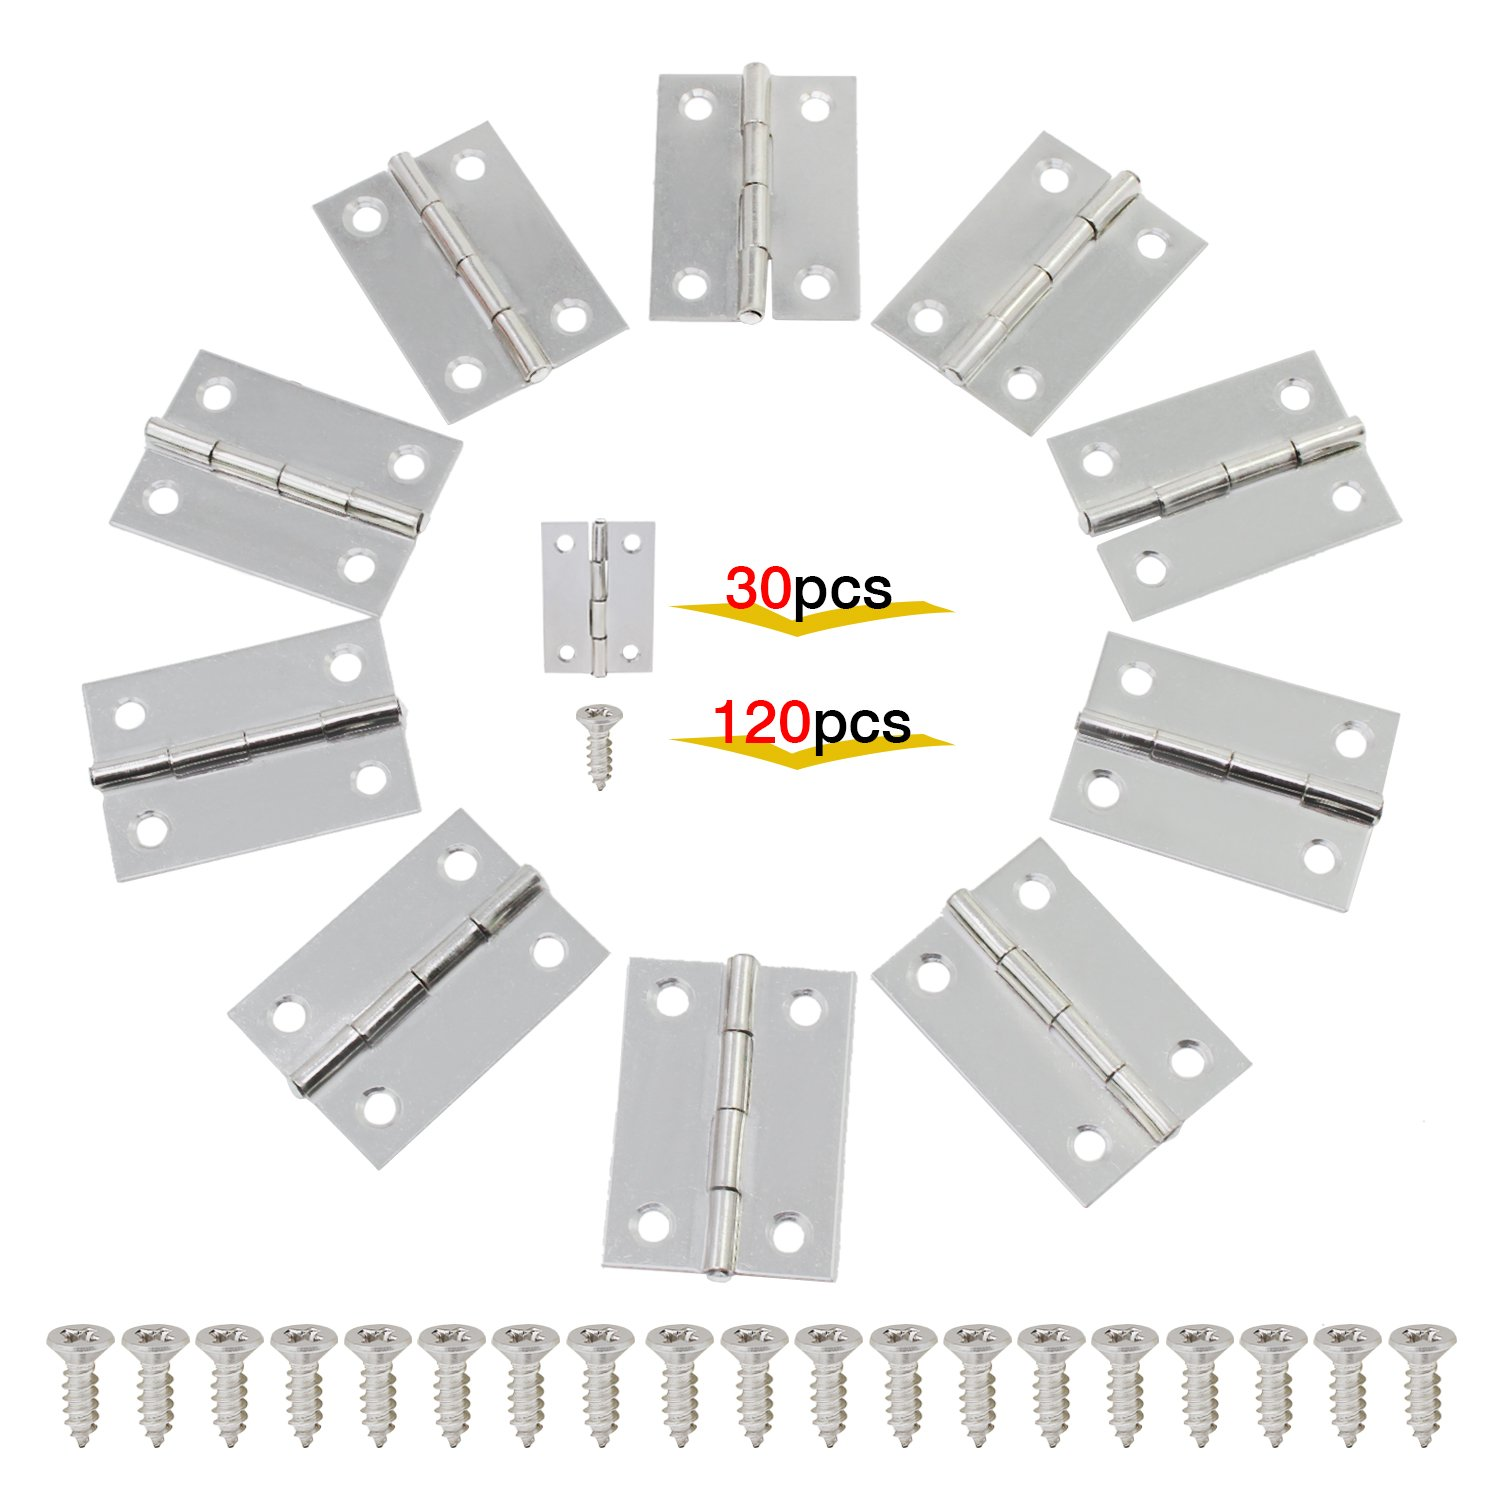 OCR 30PCS 2Inch Folding Butt Hinges Stainless Steel Home Furniture Hardware Cabinet Hinges with 120PCS Screws(2inch 30pcs) by OCR (Image #1)